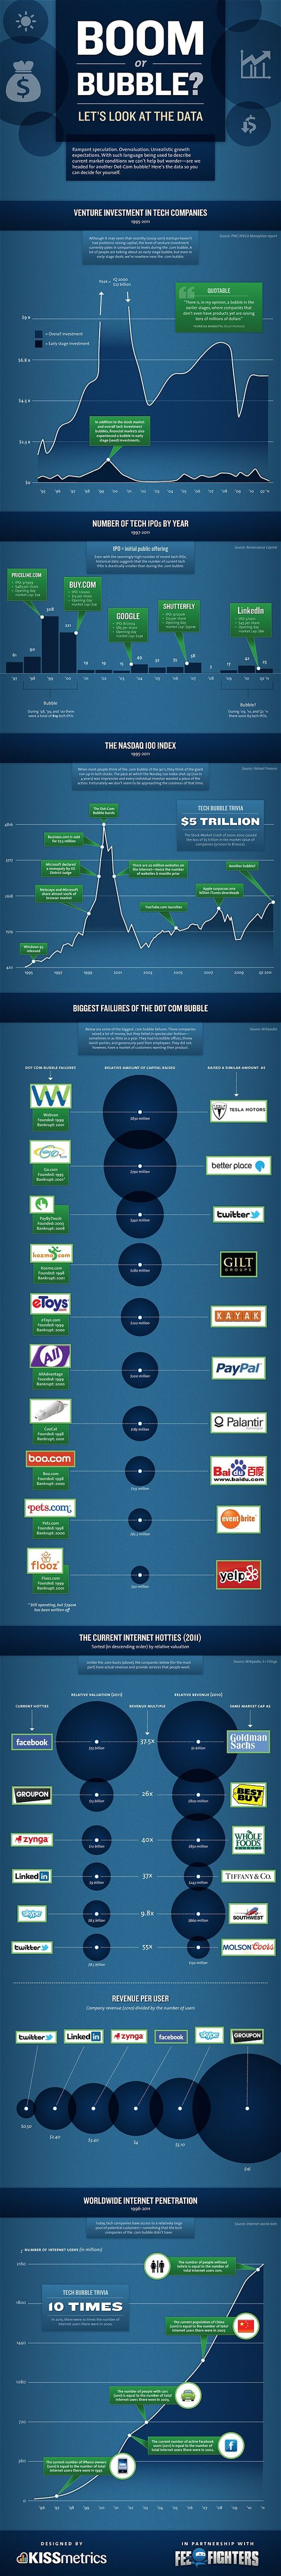 Tech Boom or Bubble? Take a Look at the Data!